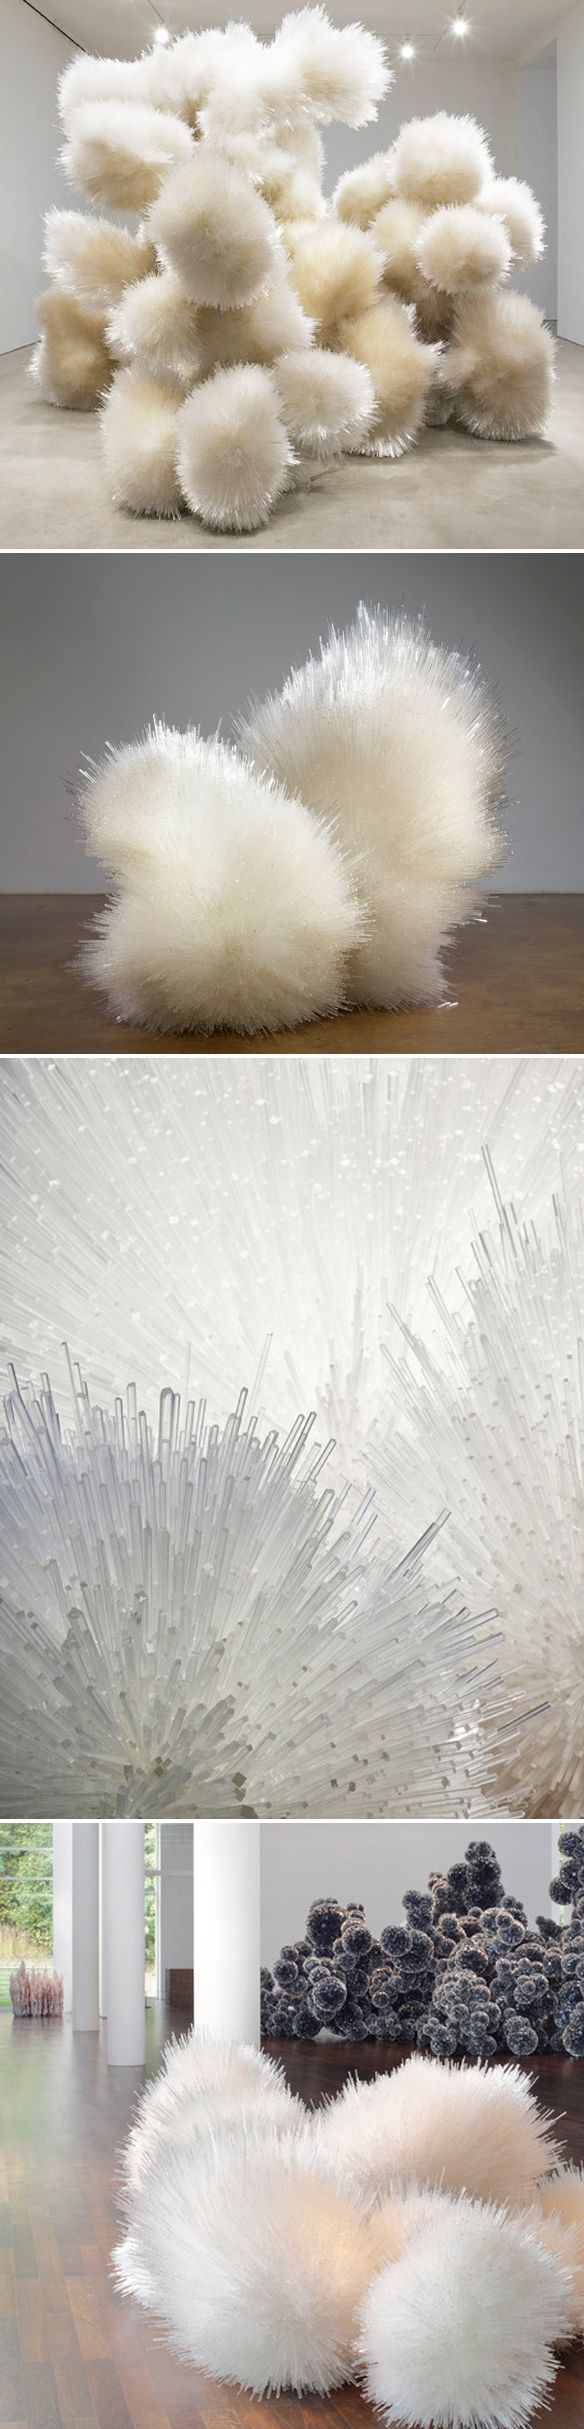 Giant/fluffy pussy willows, and pink stalagmites? Nope. Bunches of acrylic rods, and stacks of buttons. Insane. This is the breathtaking work of Brooklyn based installation artist Tara Donovan. And it's pretty amazing